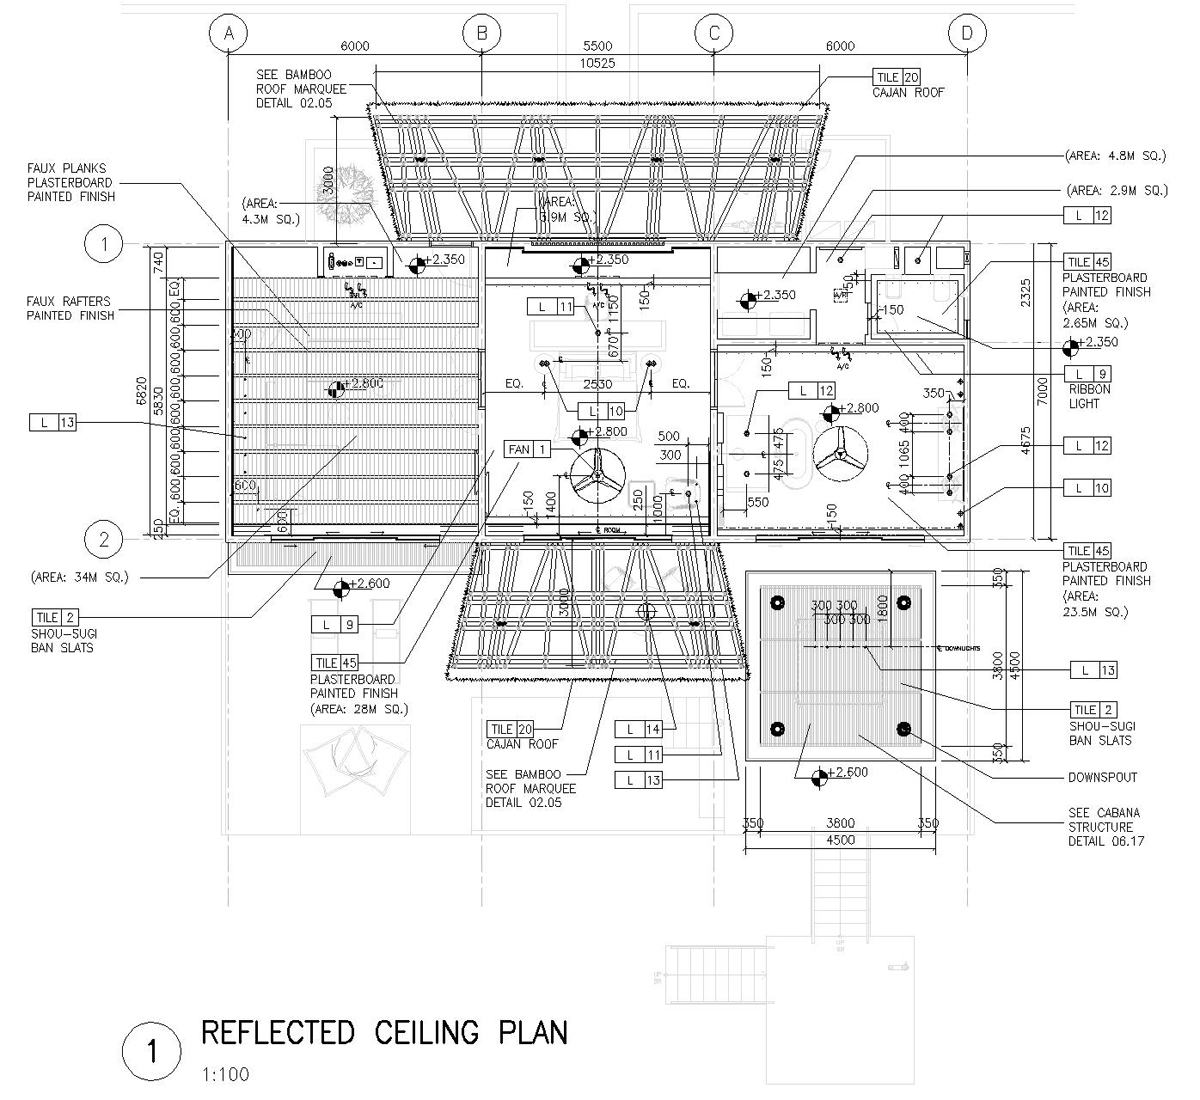 19 reflected ceiling plan how to diagram a sentence